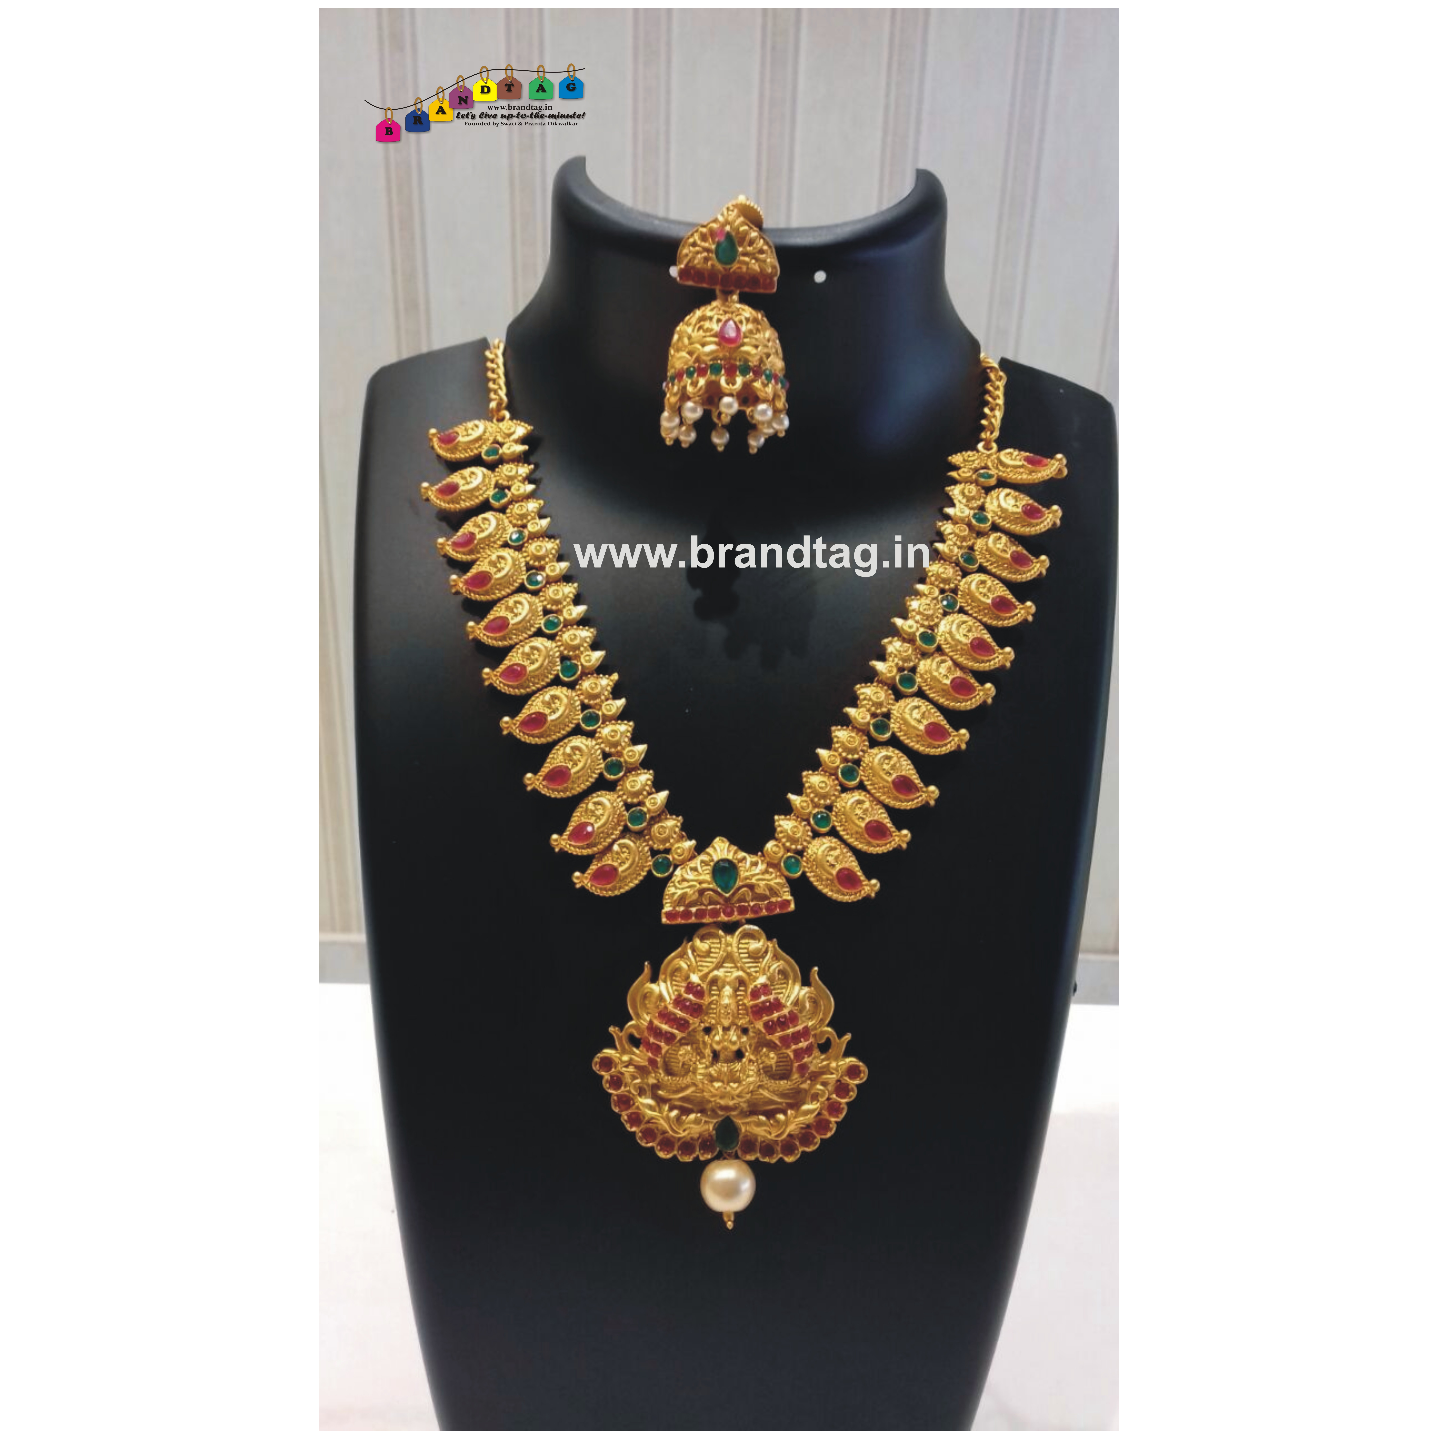 Diwali Collection - Long Golden Necklace set!